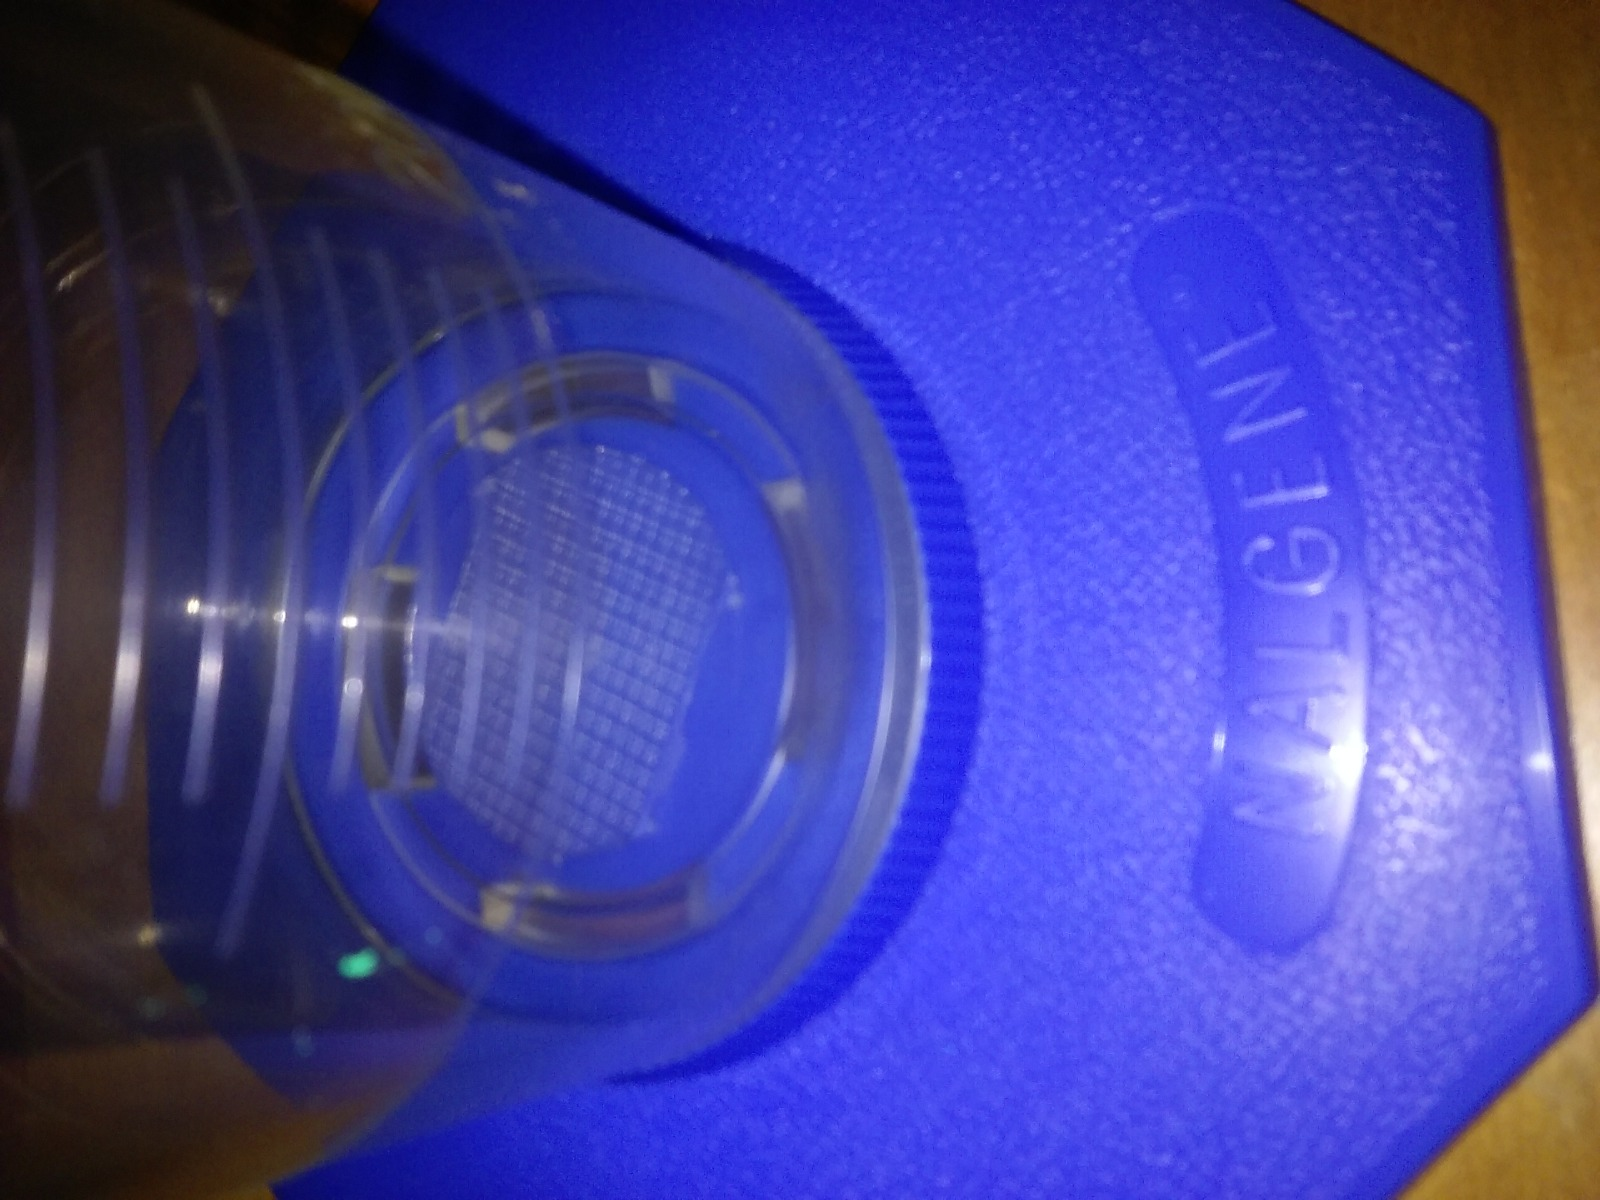 Brand New Made in the USA (Nalgene) HDPE & PP Bottles, Cylinders etc.